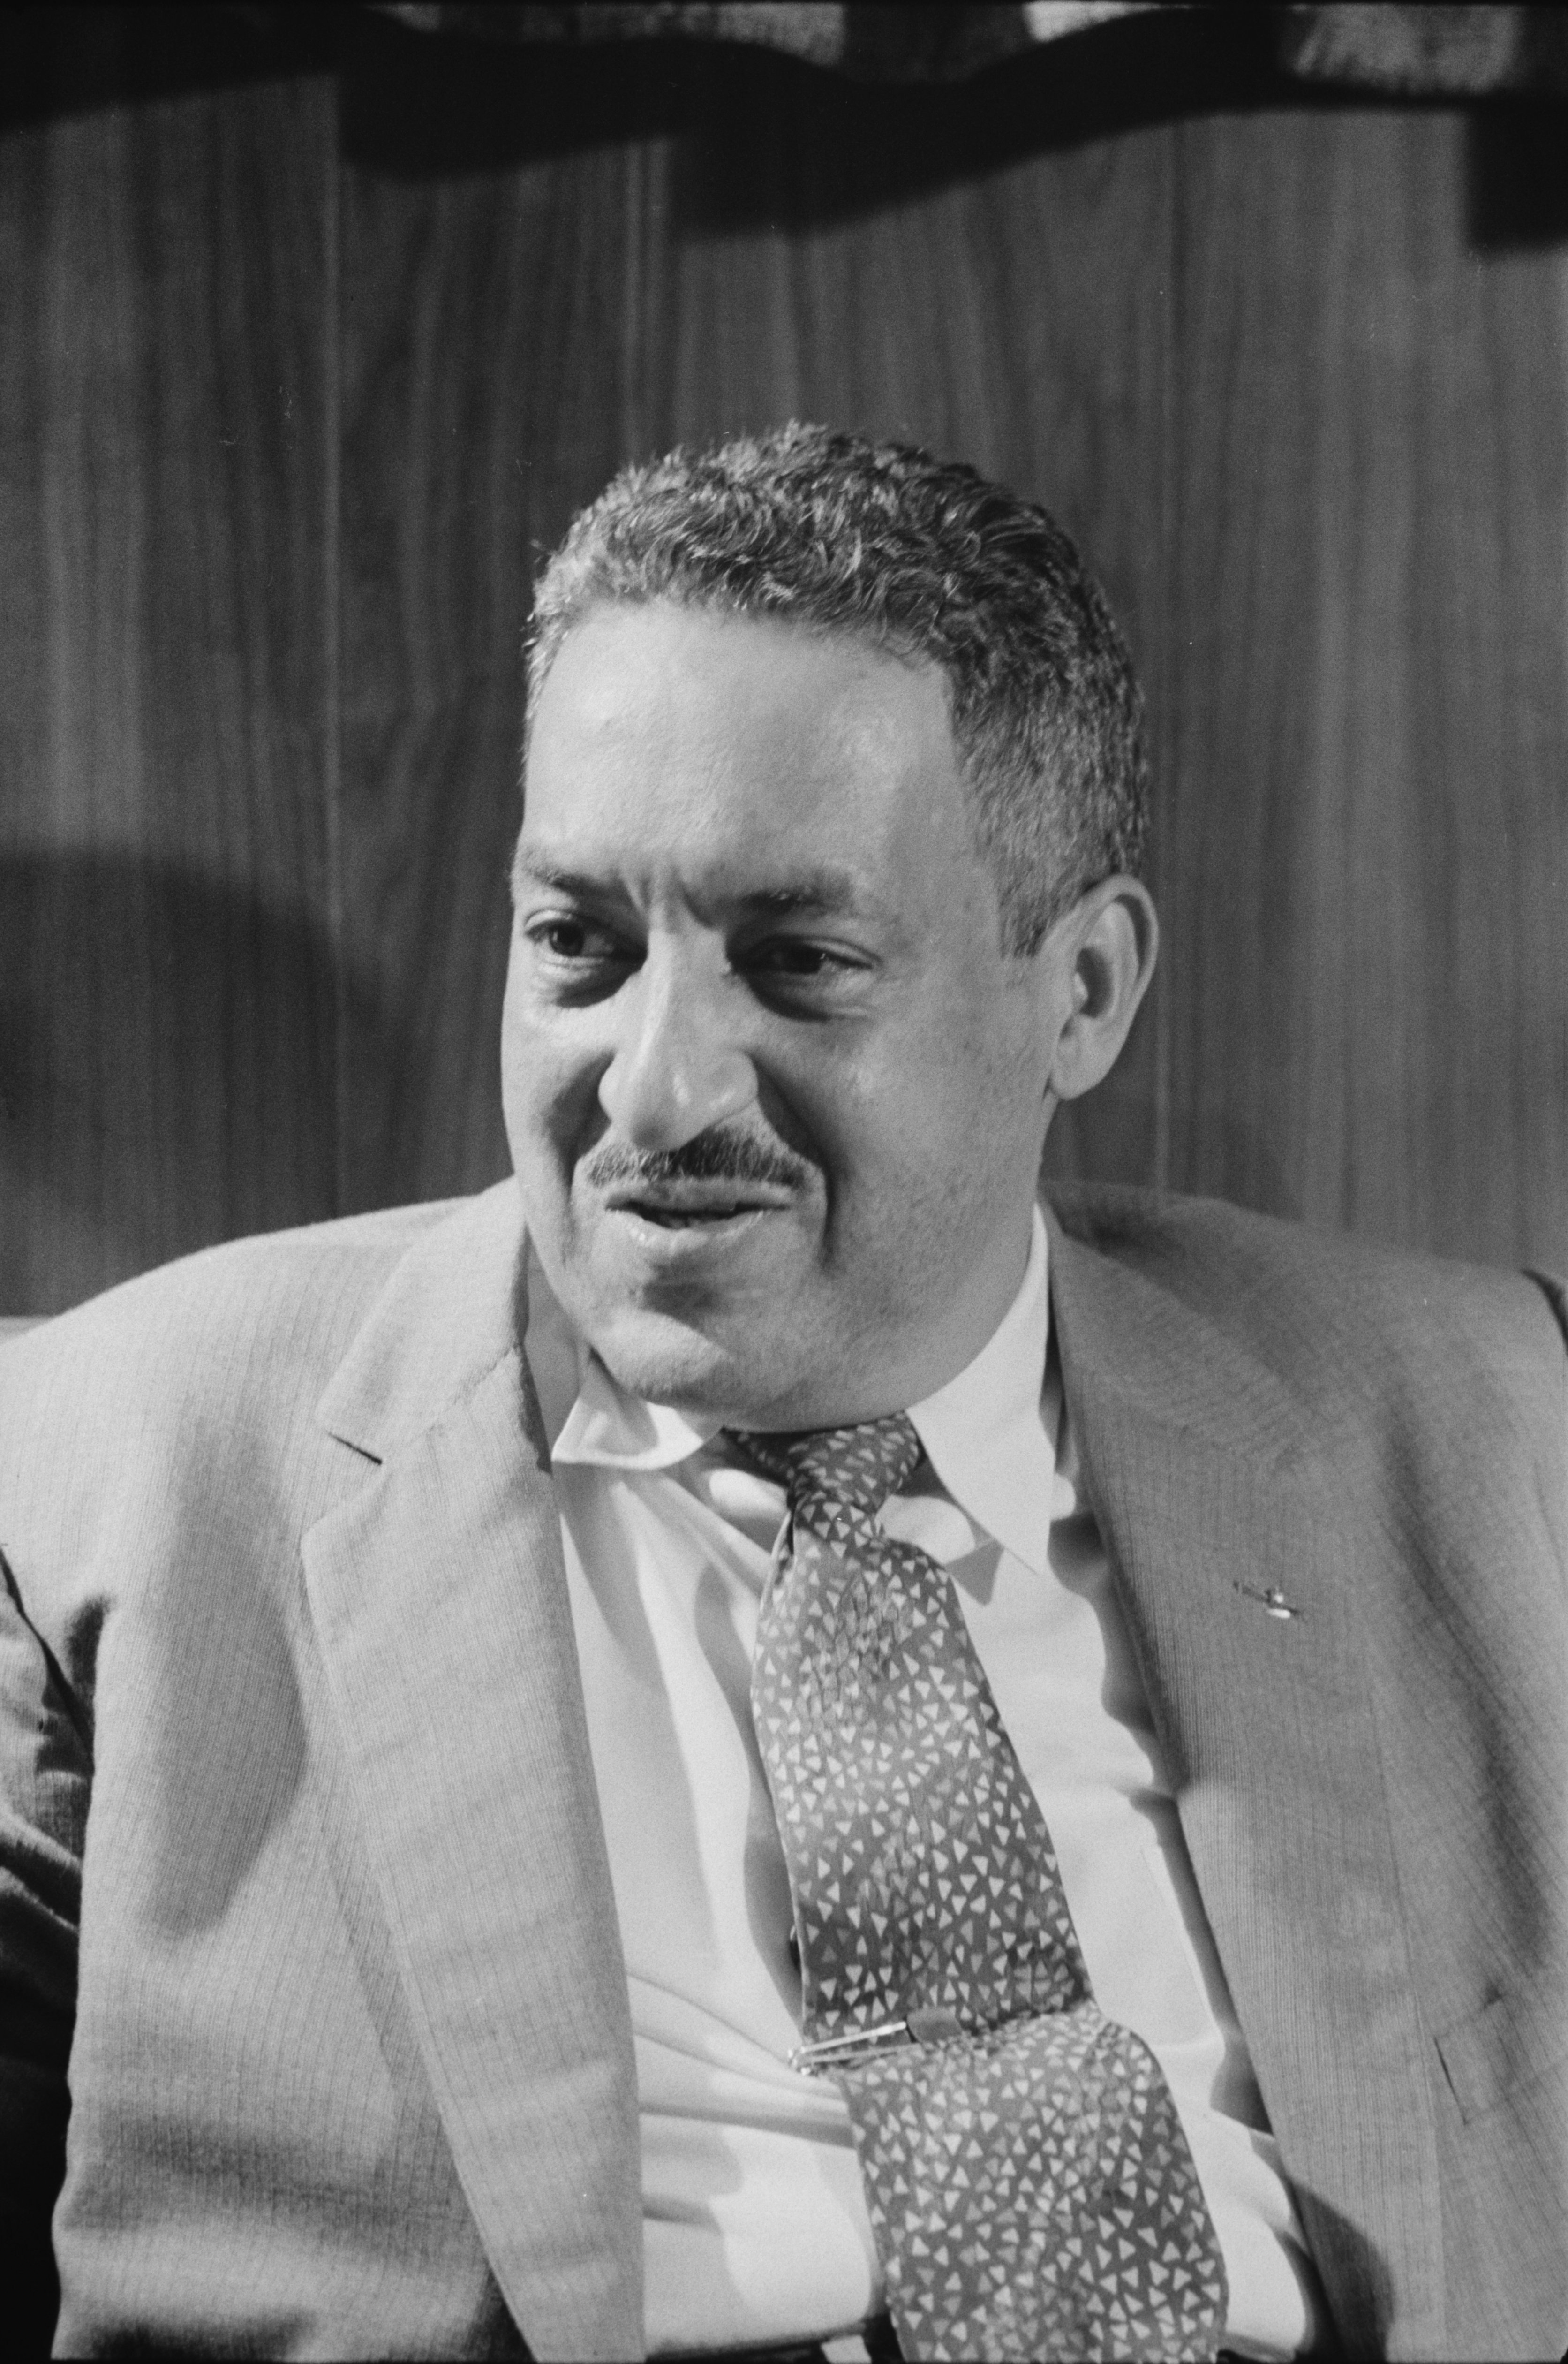 a description of thurgood marshall as a famous african american lawyer Thurgood marshall was a towering figure in the civil rights movement and the first  african  as the first african-american justice of the us supreme court, he was  a  as a civil rights lawyer, famously criss-crossing the south on behalf of black.